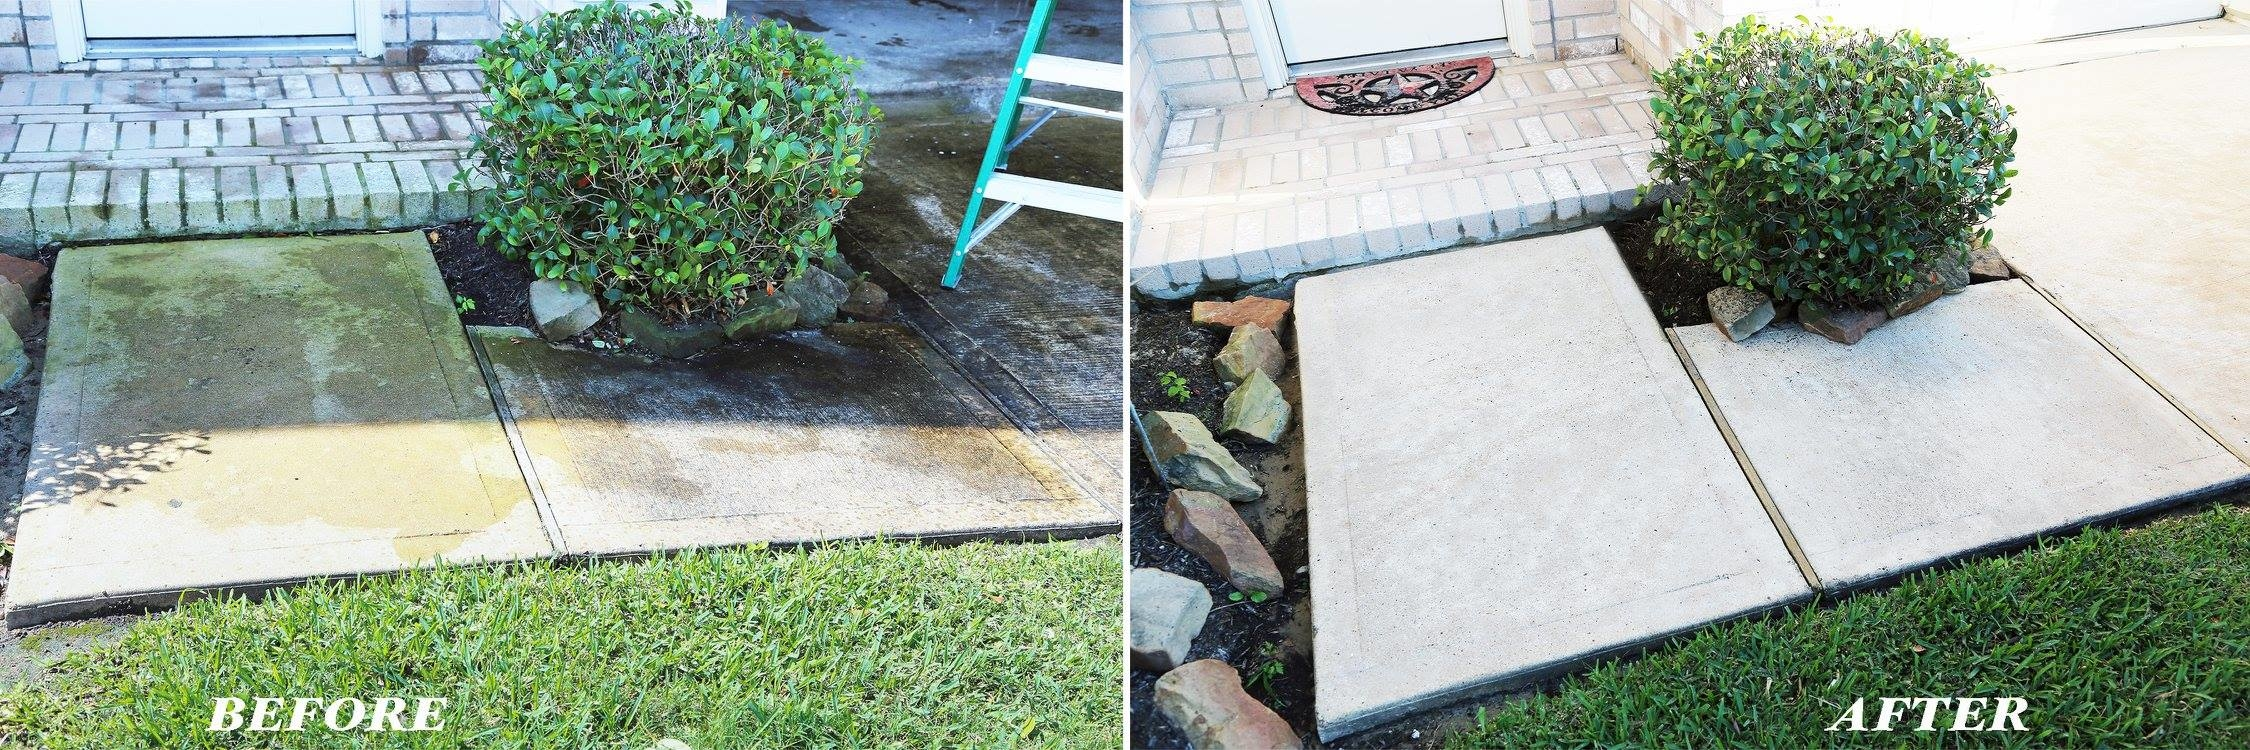 Made Affordable Pressure Washing Services image 0